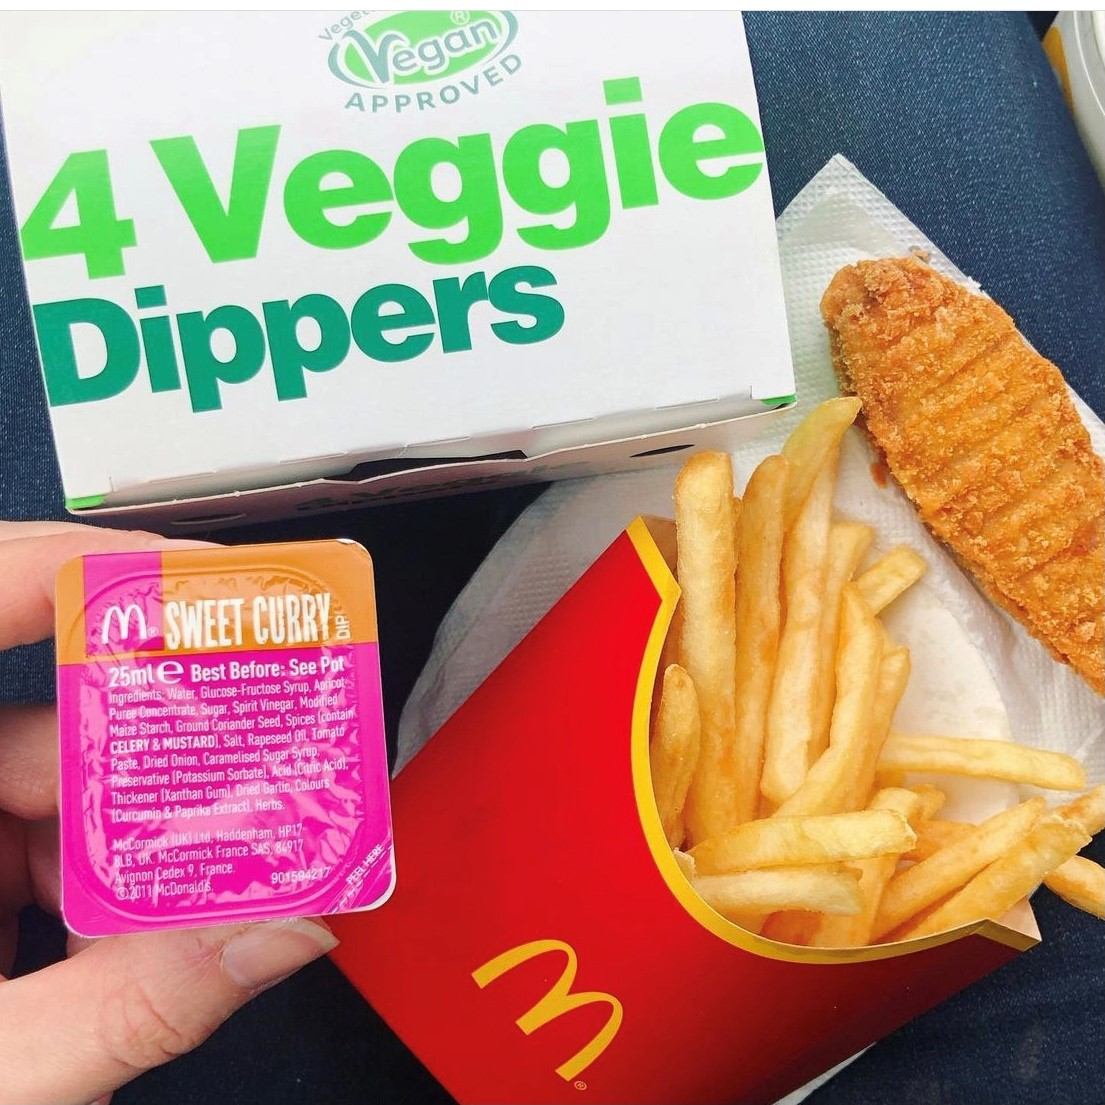 What is gluten free at Mcdonald's UK?